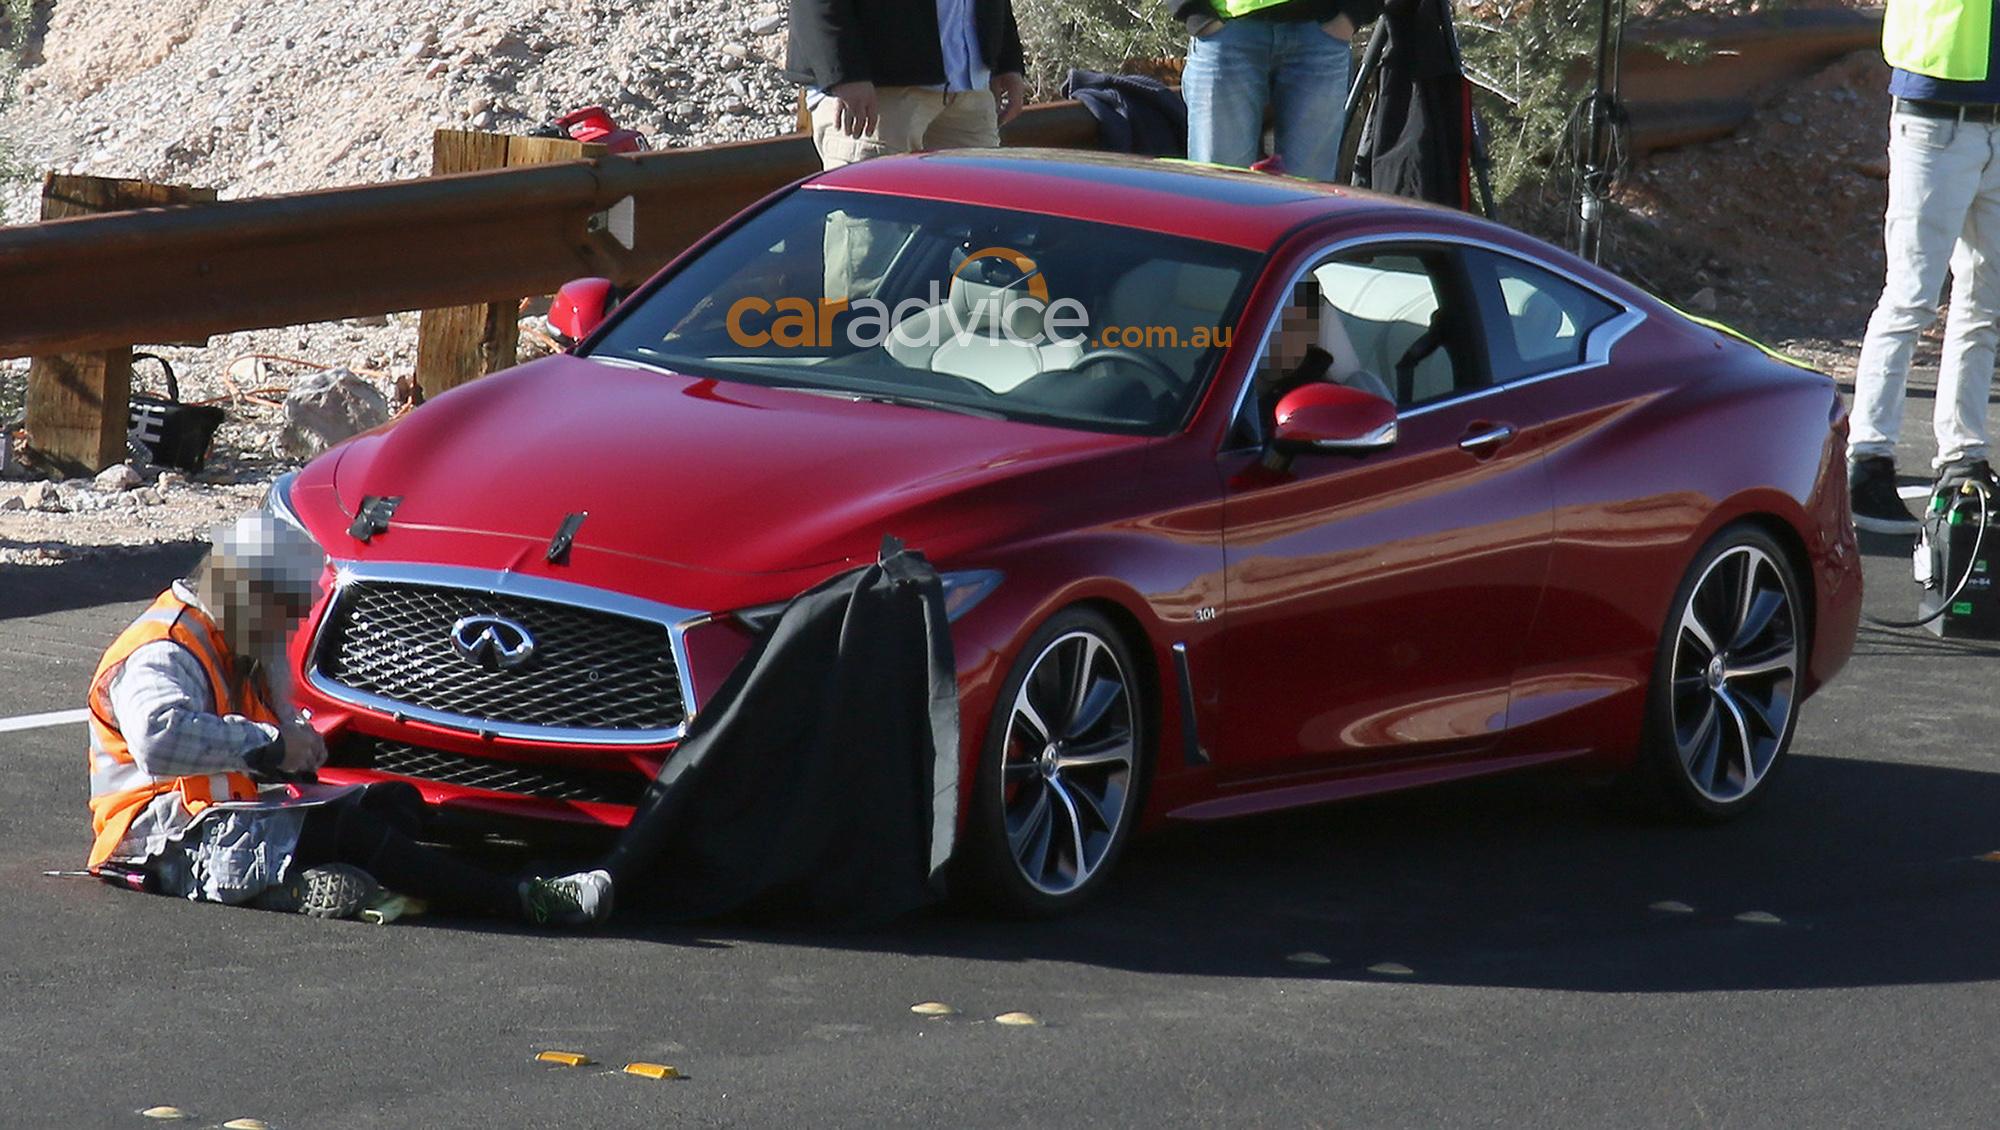 2015 Infiniti Q60 Convertible >> 2017 Infiniti Q60 coupe spied without disguise - Photos (1 of 10)